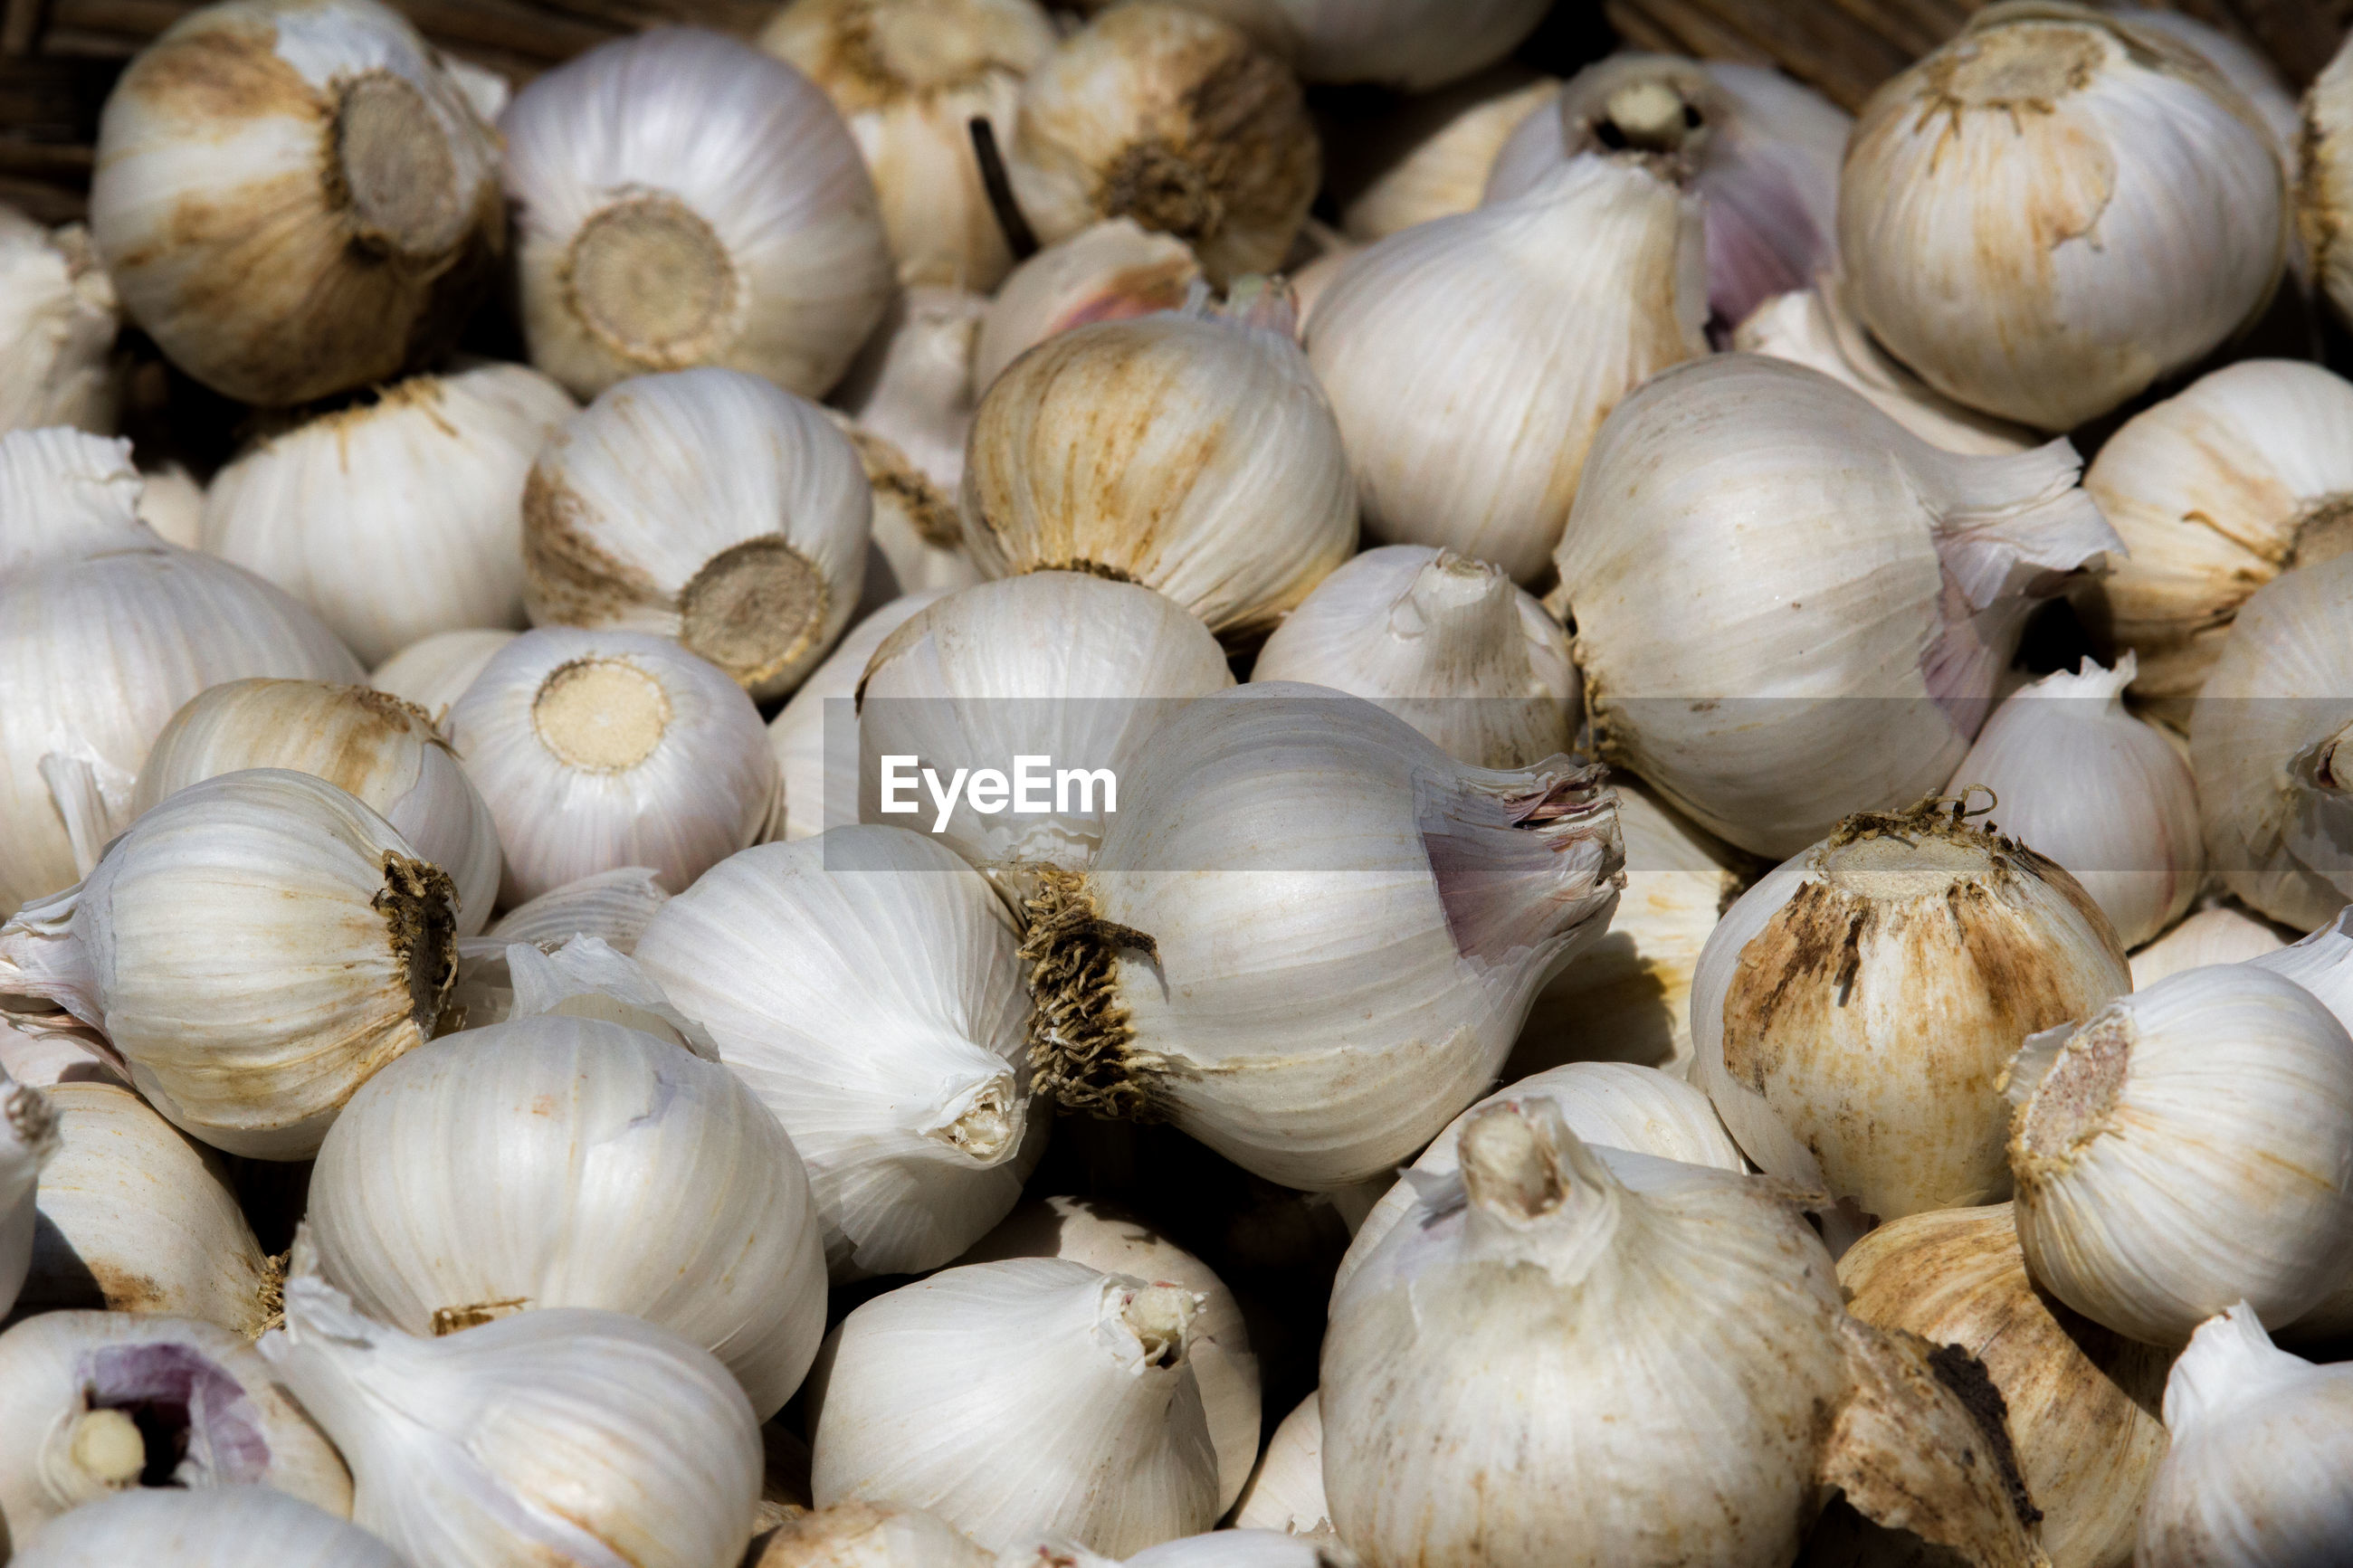 Close-up of onions for sale at market stall